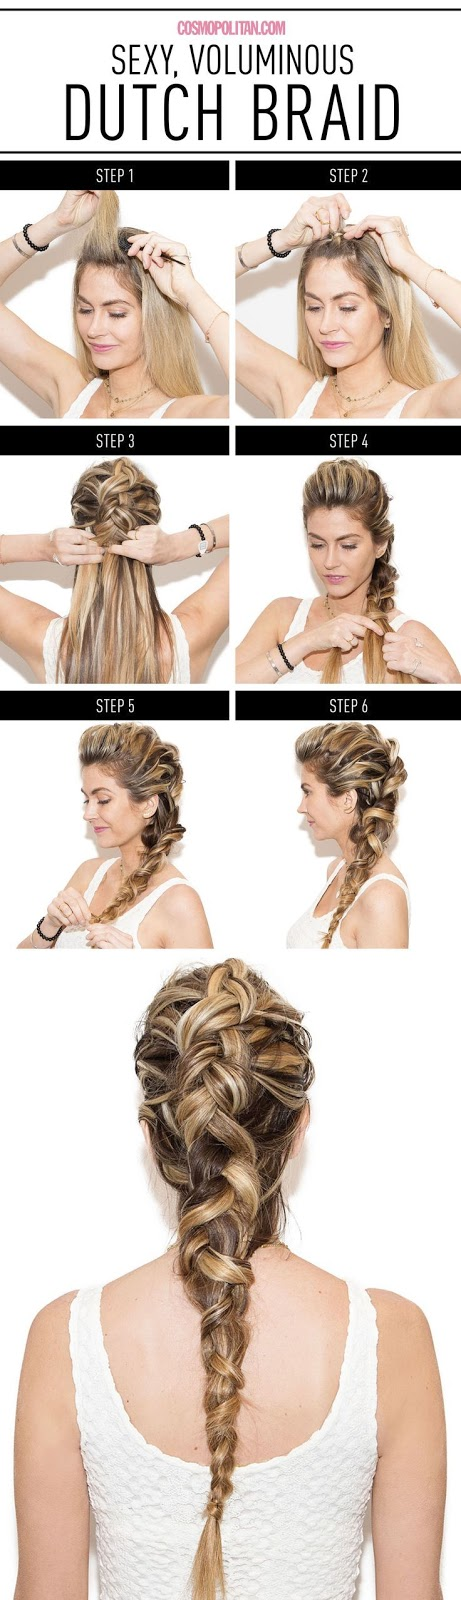 How to Make Dutch Braid in 6 Easy Steps